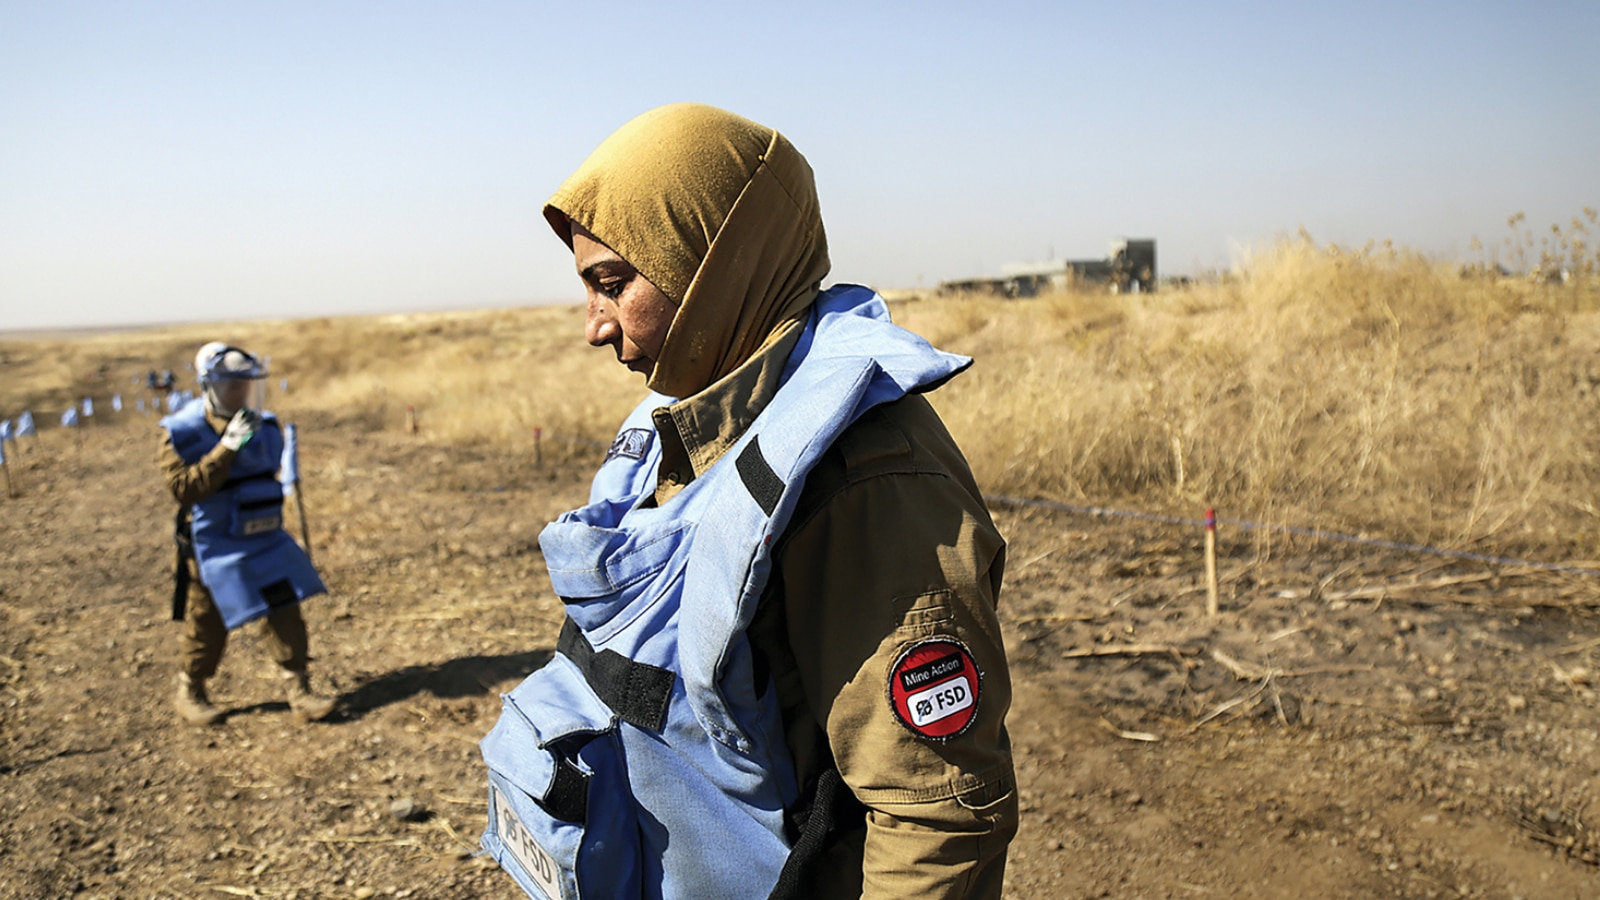 Unexploded ordnance (UXO) and improvise explosive device (IED) clearance is conducted between Mosul and Erbil, Iraq. (Photo courtesy of Swiss Foundation for Mine Action)